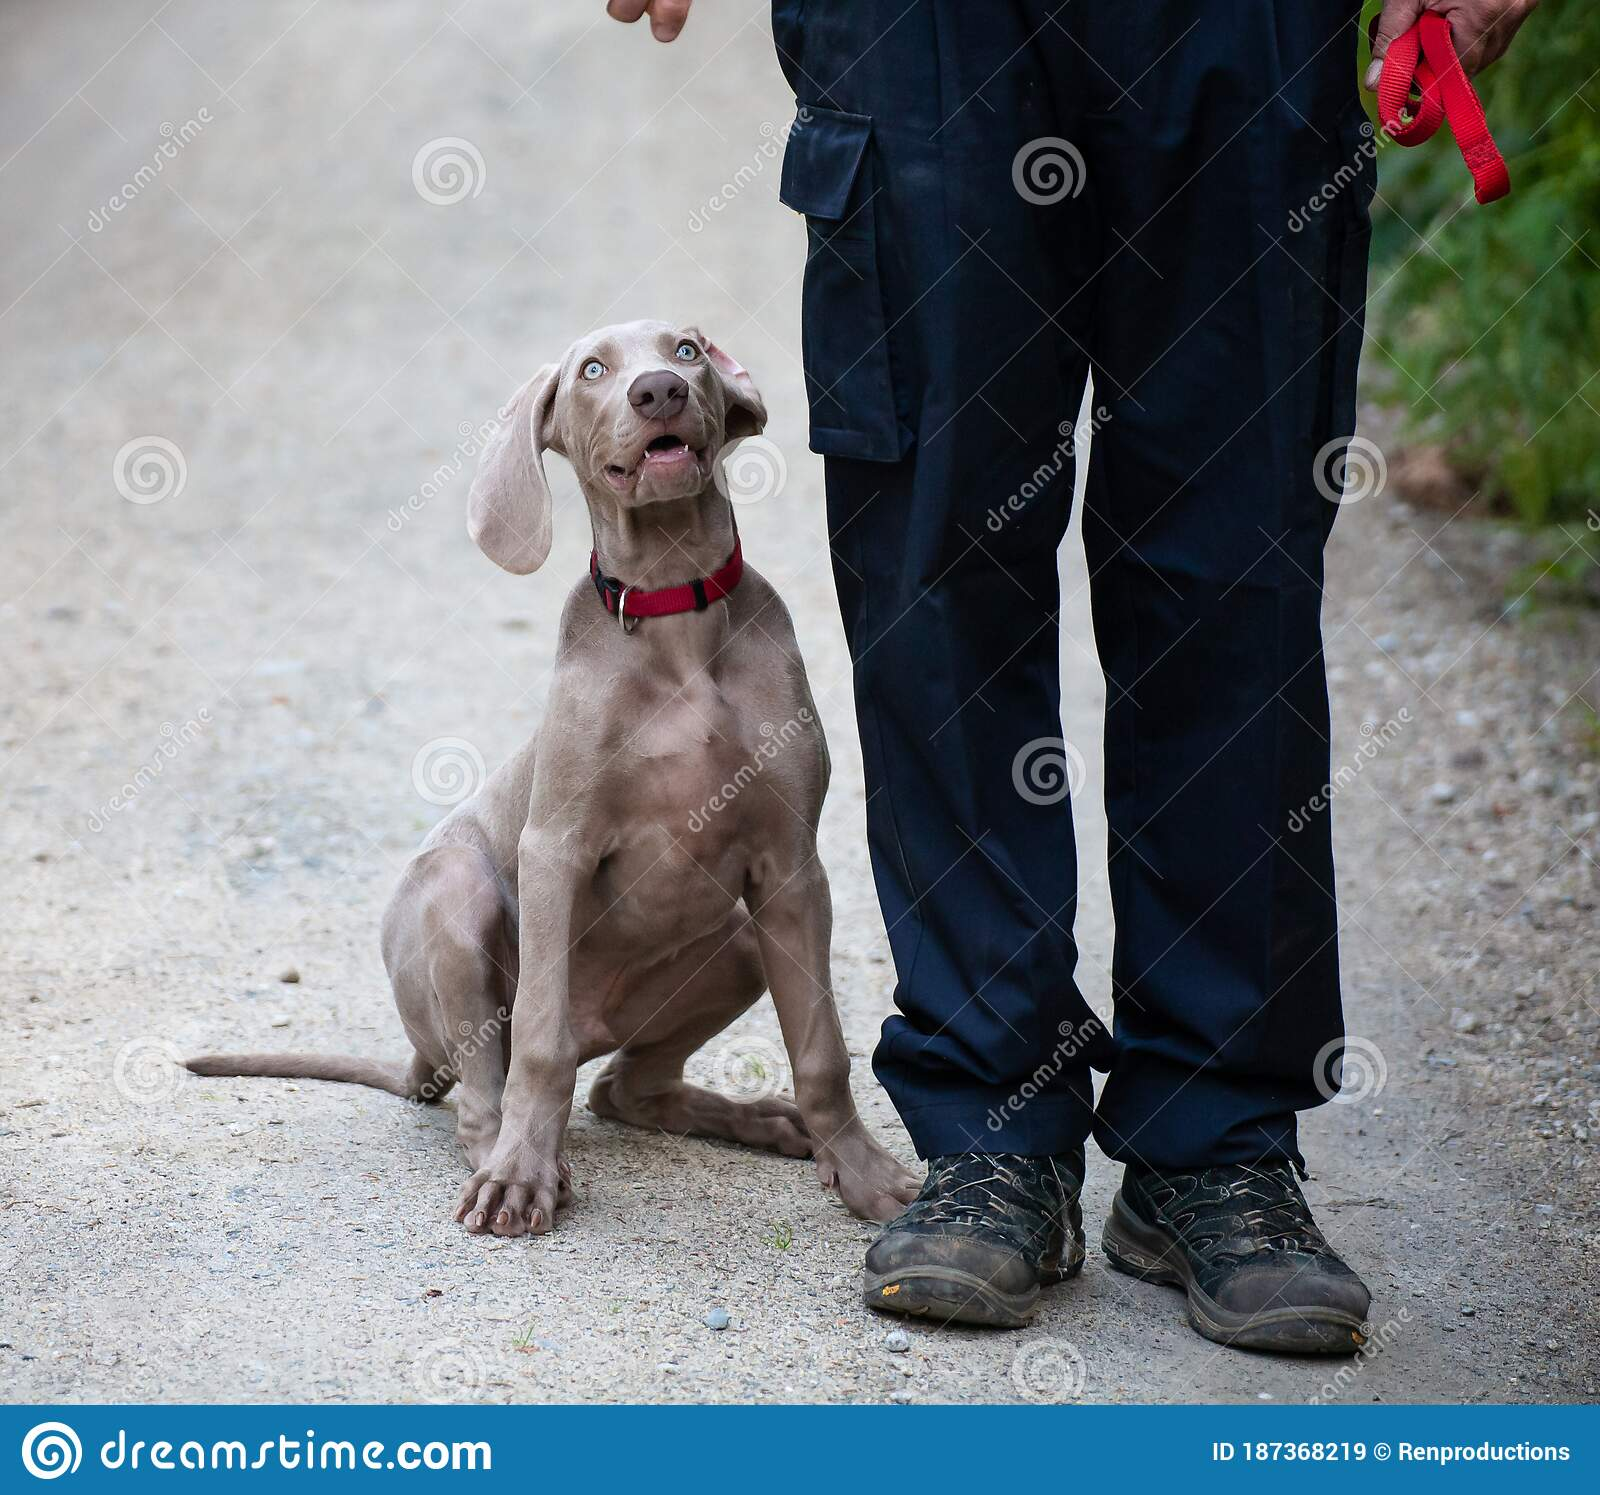 Weimaraner Puppy Takes His First Steps In Training Stock Image Image Of Hunting Companion 187368219